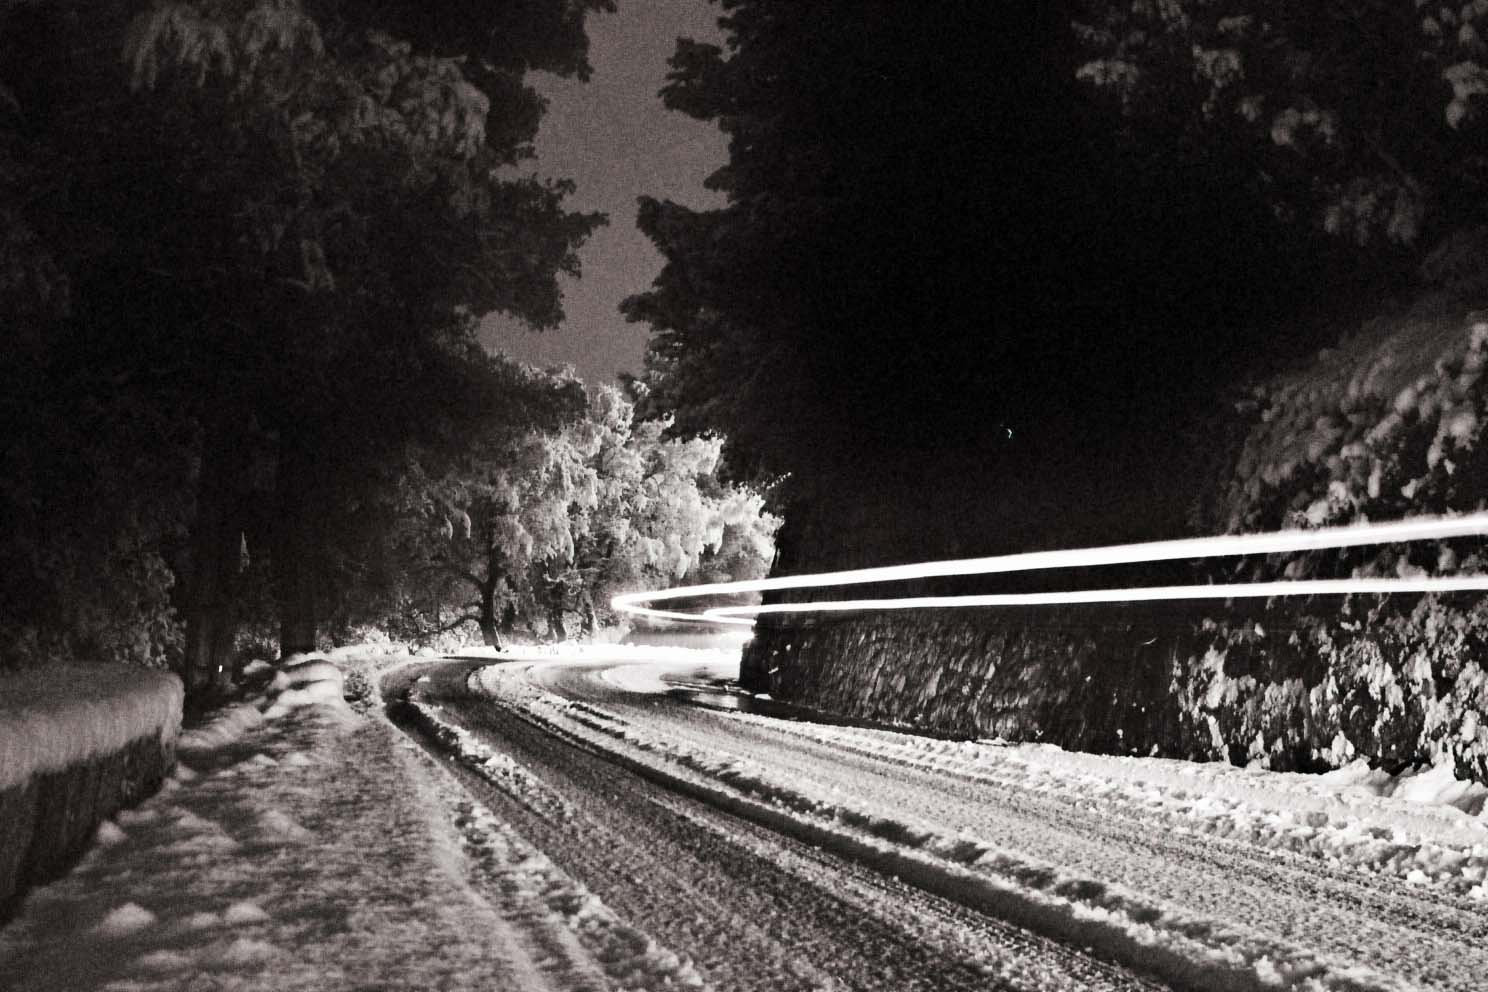 road to Falicon. Nightime long exposure of a car passing by